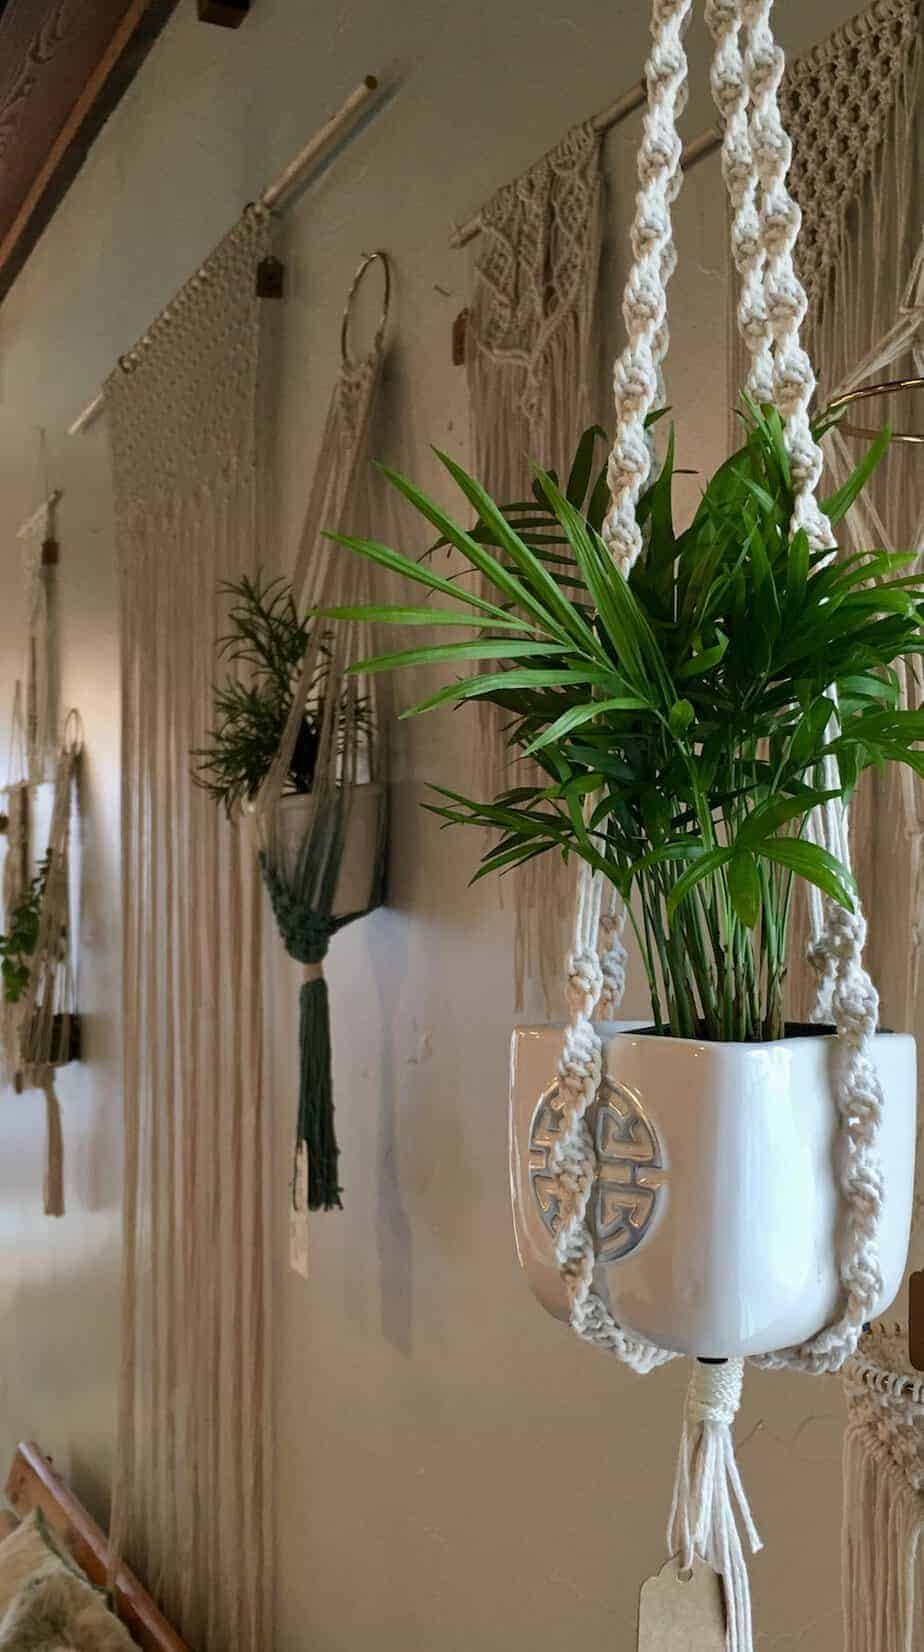 10 Hanging Plants and Ideas for Hanging Planters You'll ... on Plant Hanging Ideas  id=96214